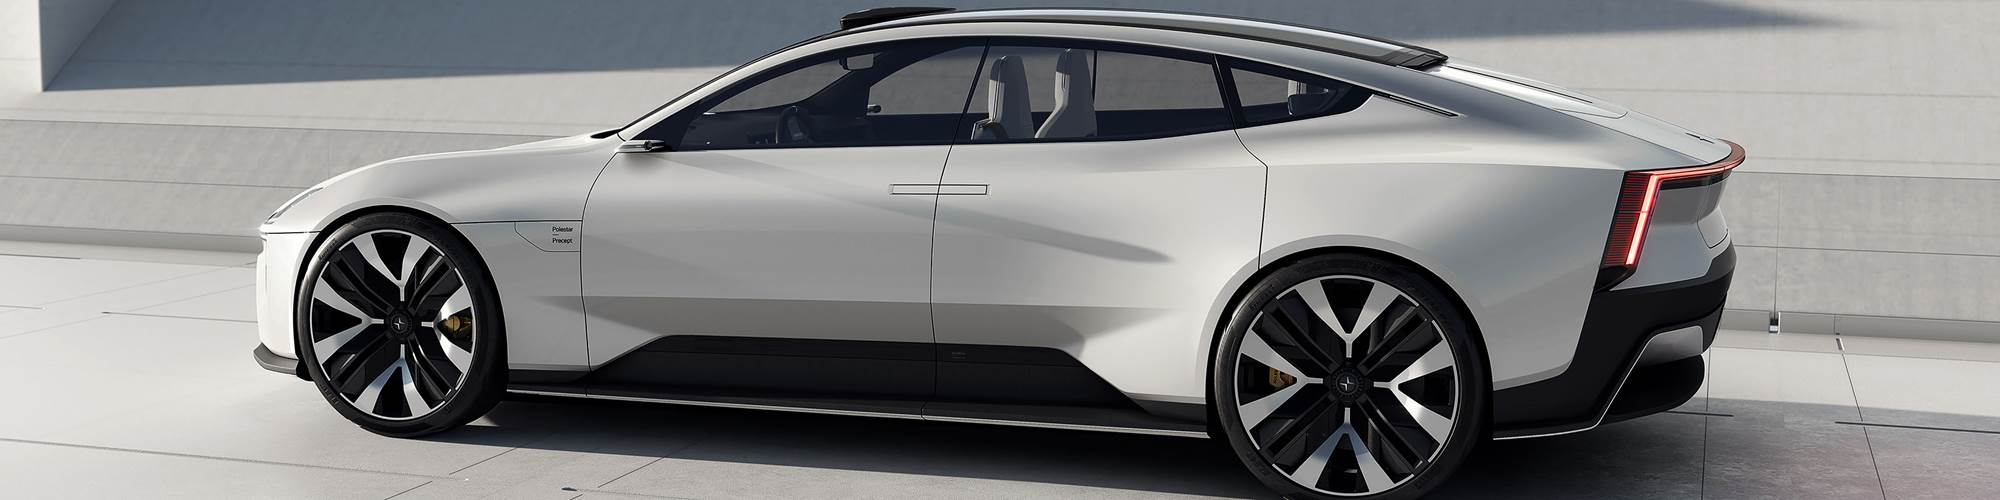 Volvo's Polestar electric car unit previews its future design direction with the Precept concept car